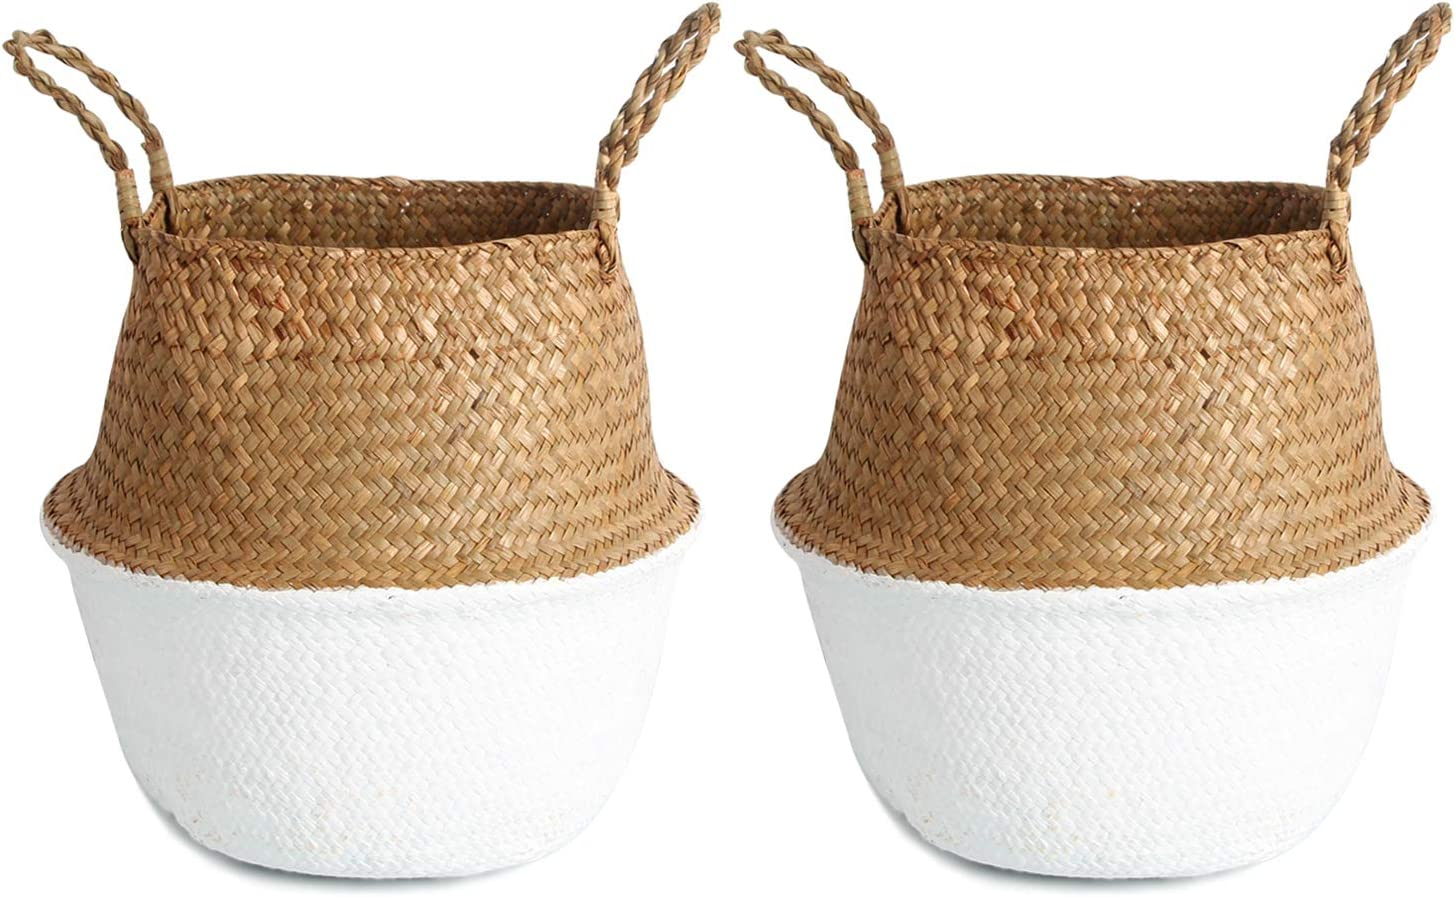 BlueMake Woven Seagrass Plant Basket Set of 2 Tote Bag with Handles for Storage, Laundry, Picnic,and Plant Pot Cover Medium, White